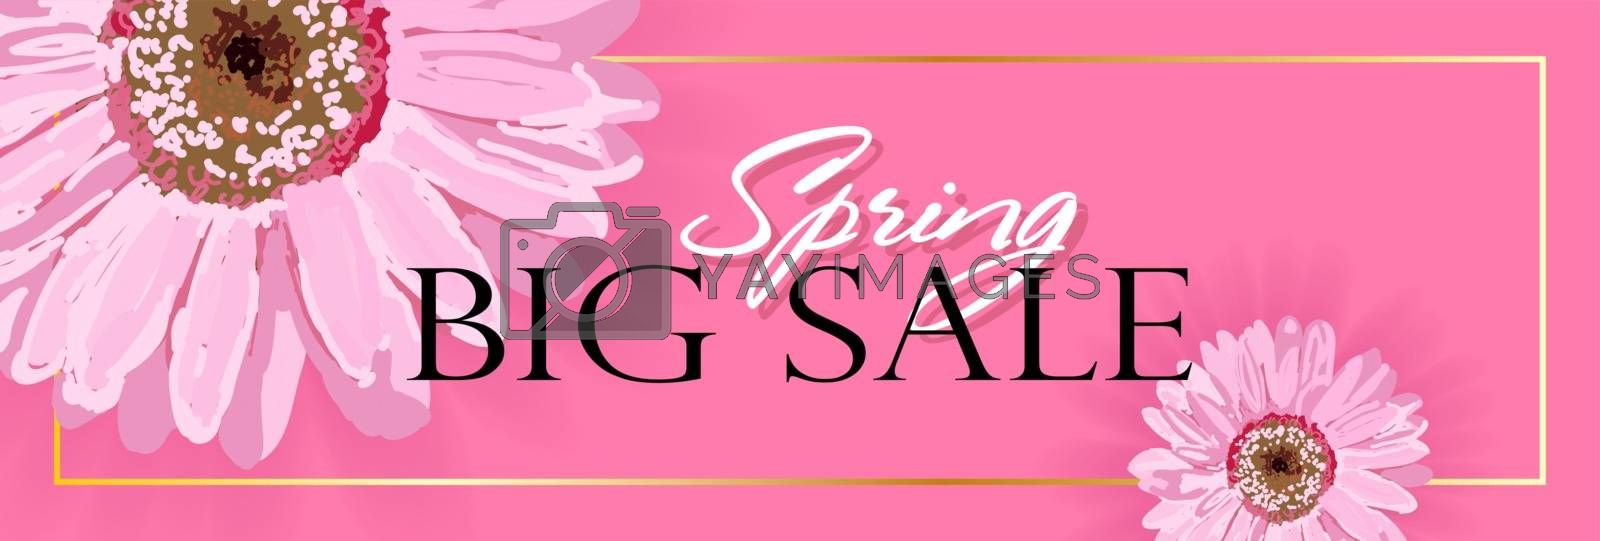 Spring banner with realistic flowers on a pink background. Vector illustration. The banner is ideal for promotions, magazines, advertising, websites.